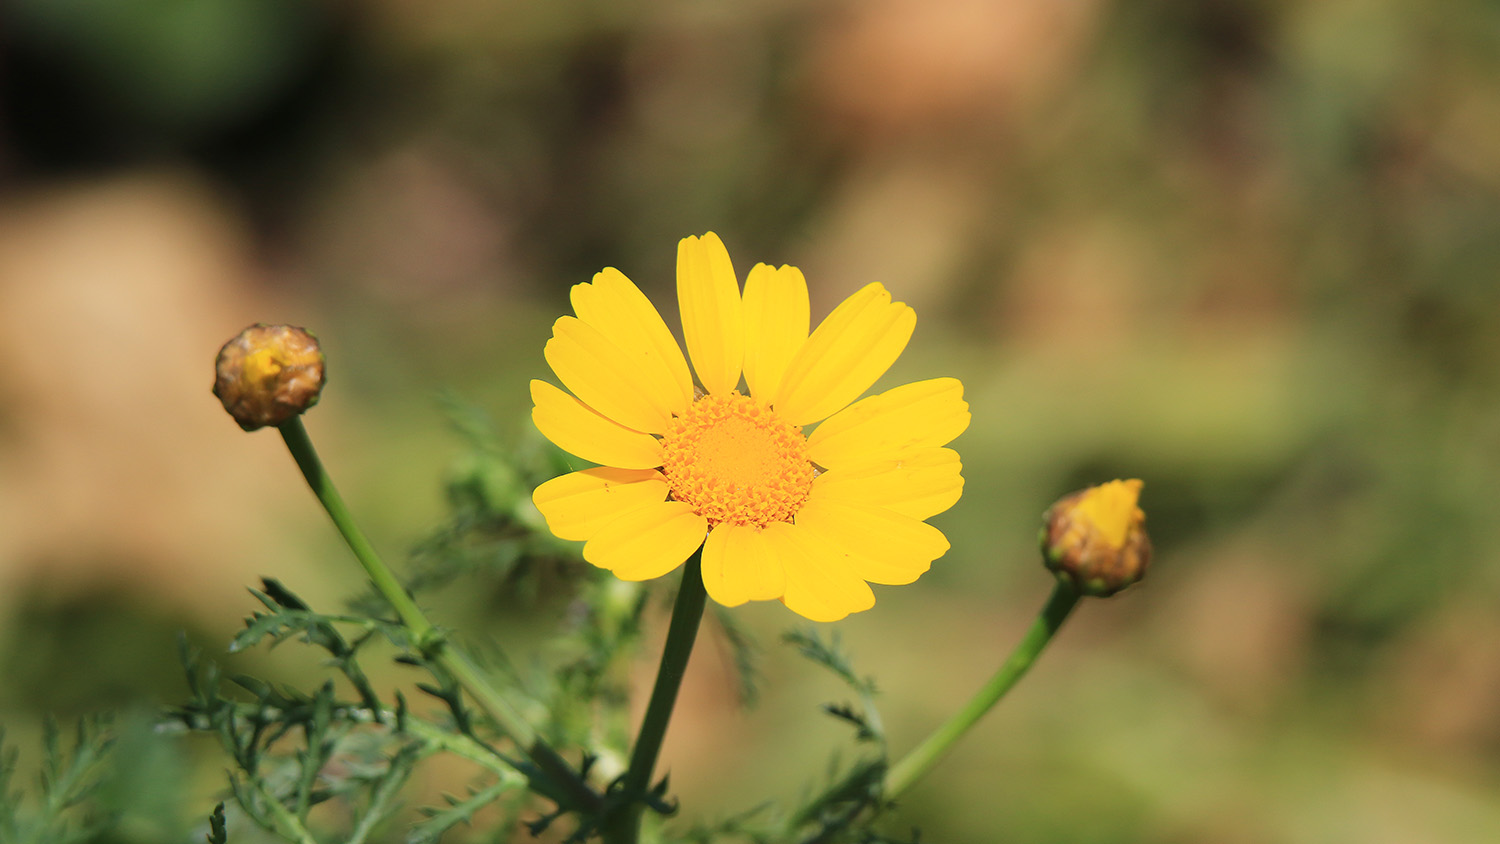 A Yellow Daisy Flower